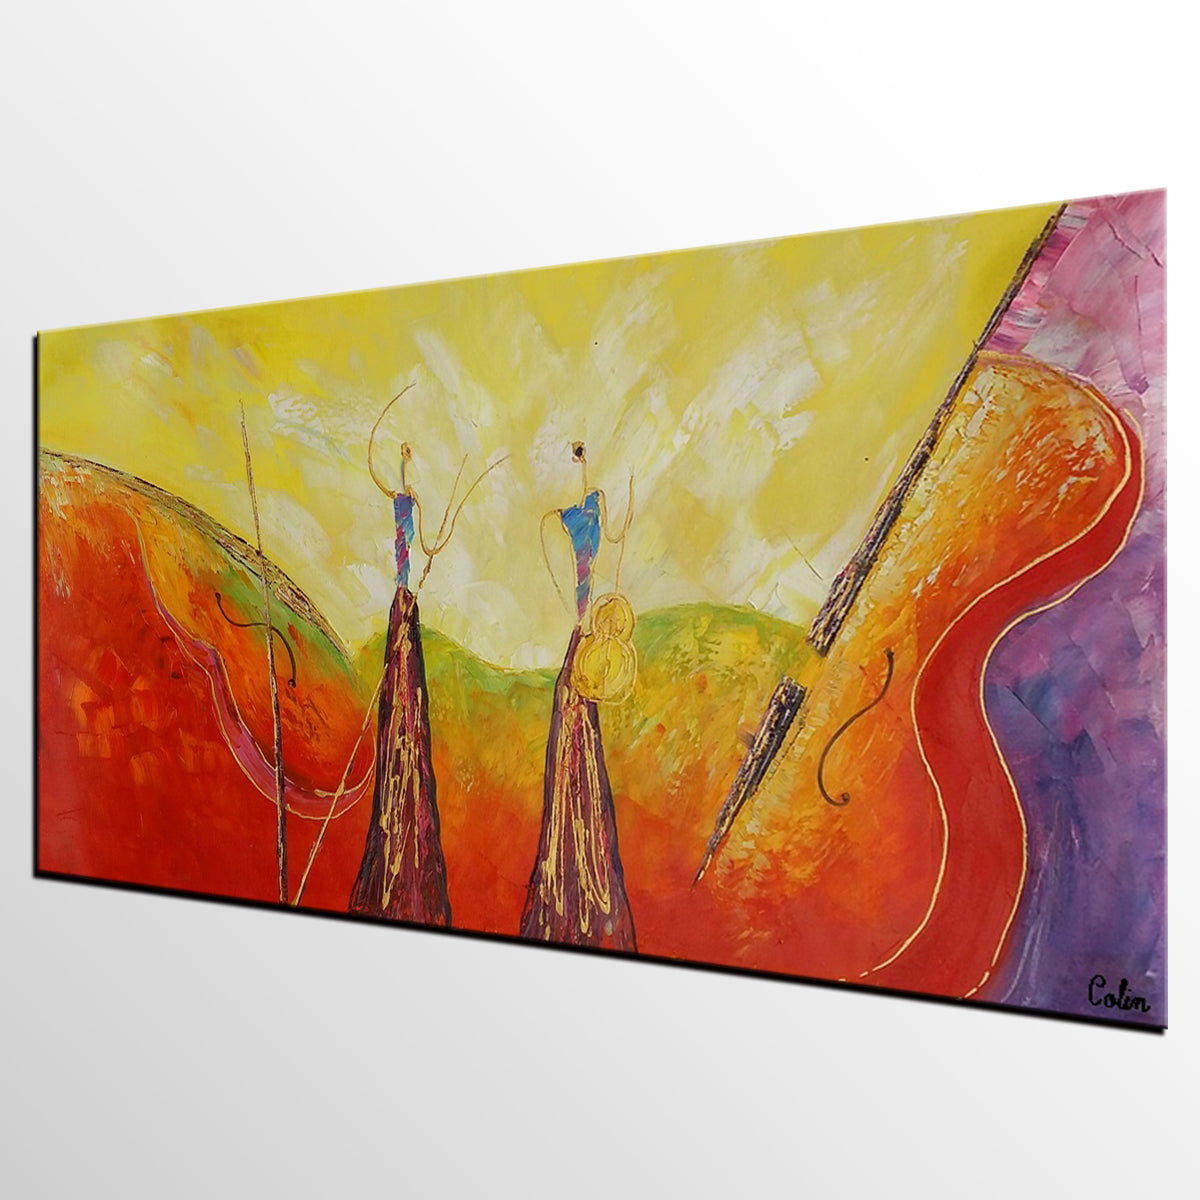 Acrylic Art, Abstract Art, Large Art, Singer Music Painting, Modern Art, Contemporary Art